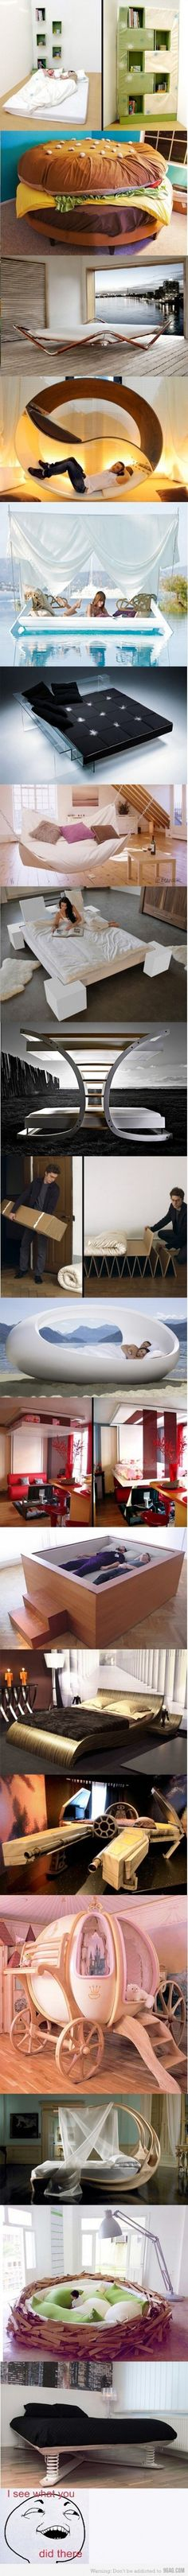 creative beds! : ) SO COOL!